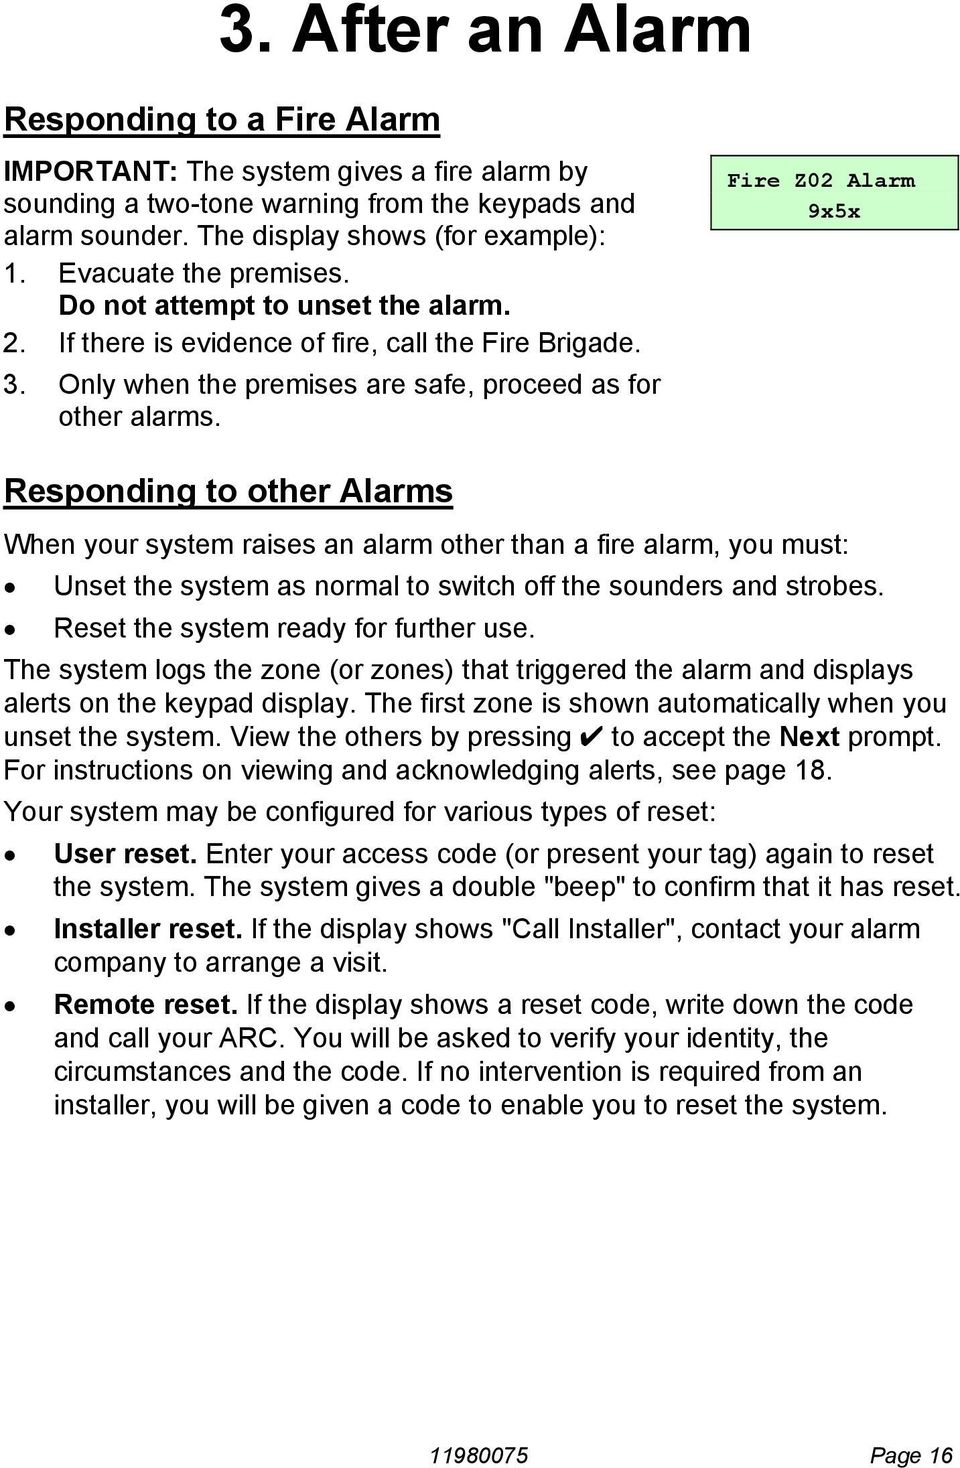 Fire Z02 Alarm 9x5x Responding to other Alarms When your system raises an alarm other than a fire alarm, you must: Unset the system as normal to switch off the sounders and strobes.